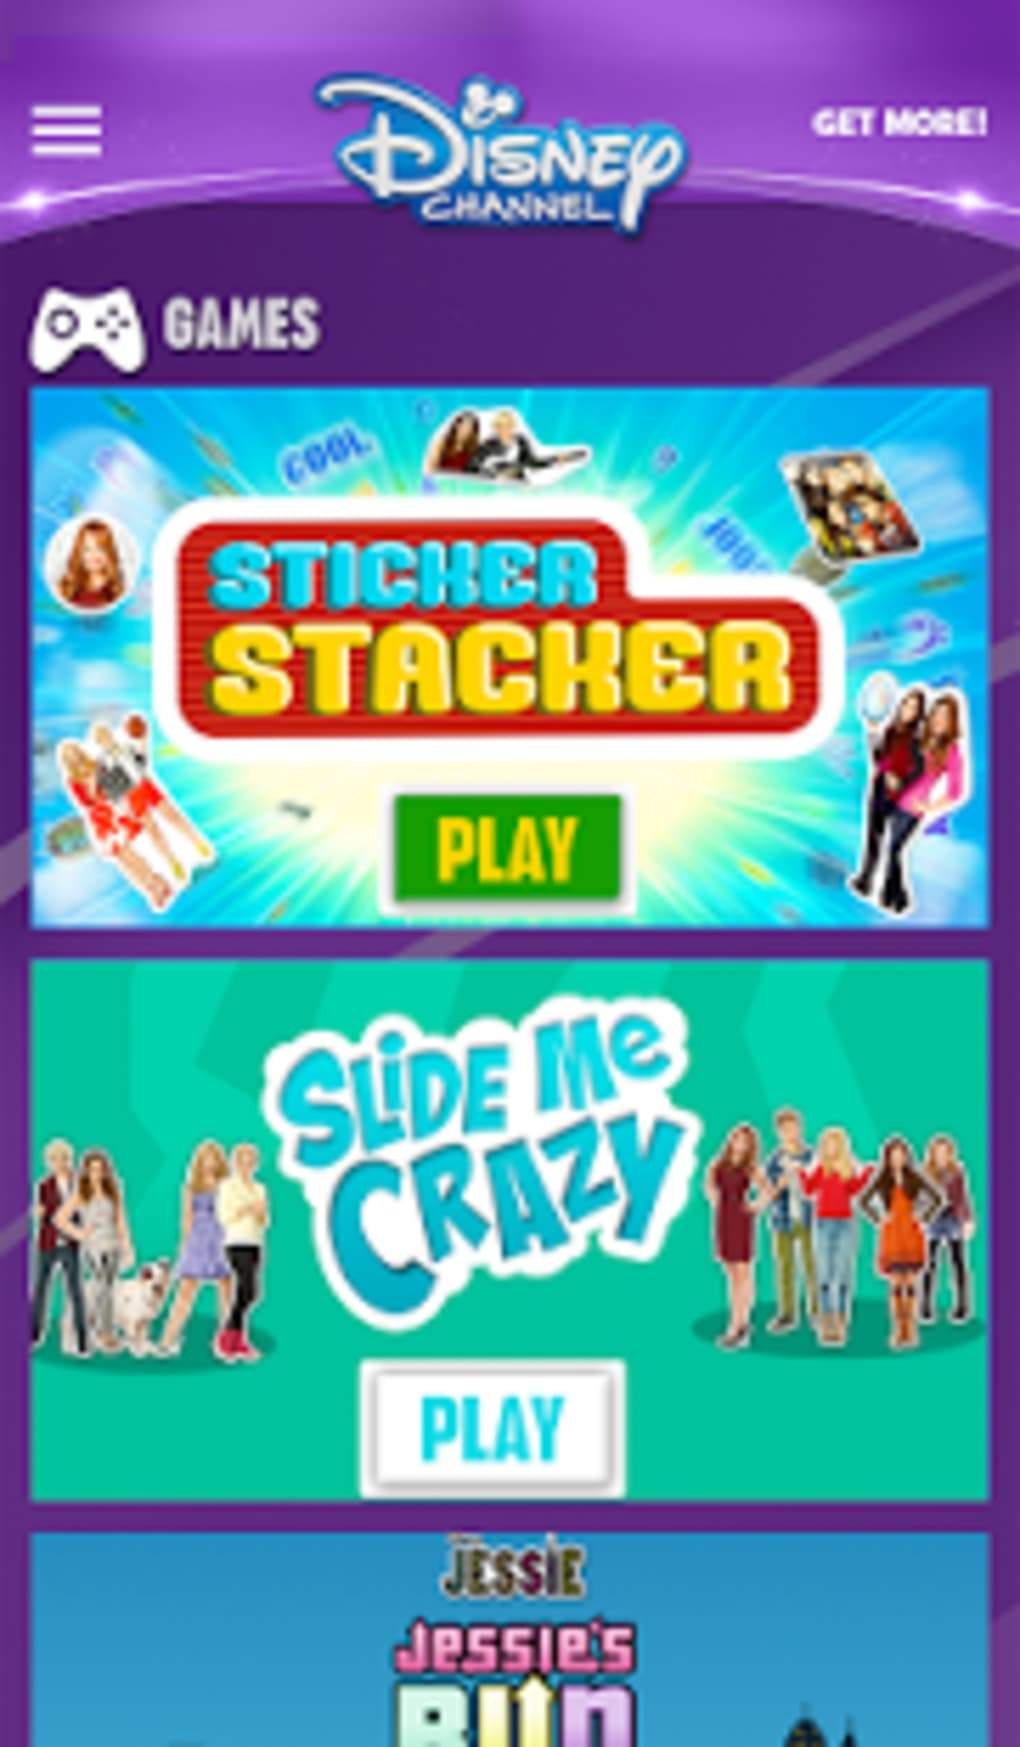 Disney Channel - watch now! APK for Android - Download